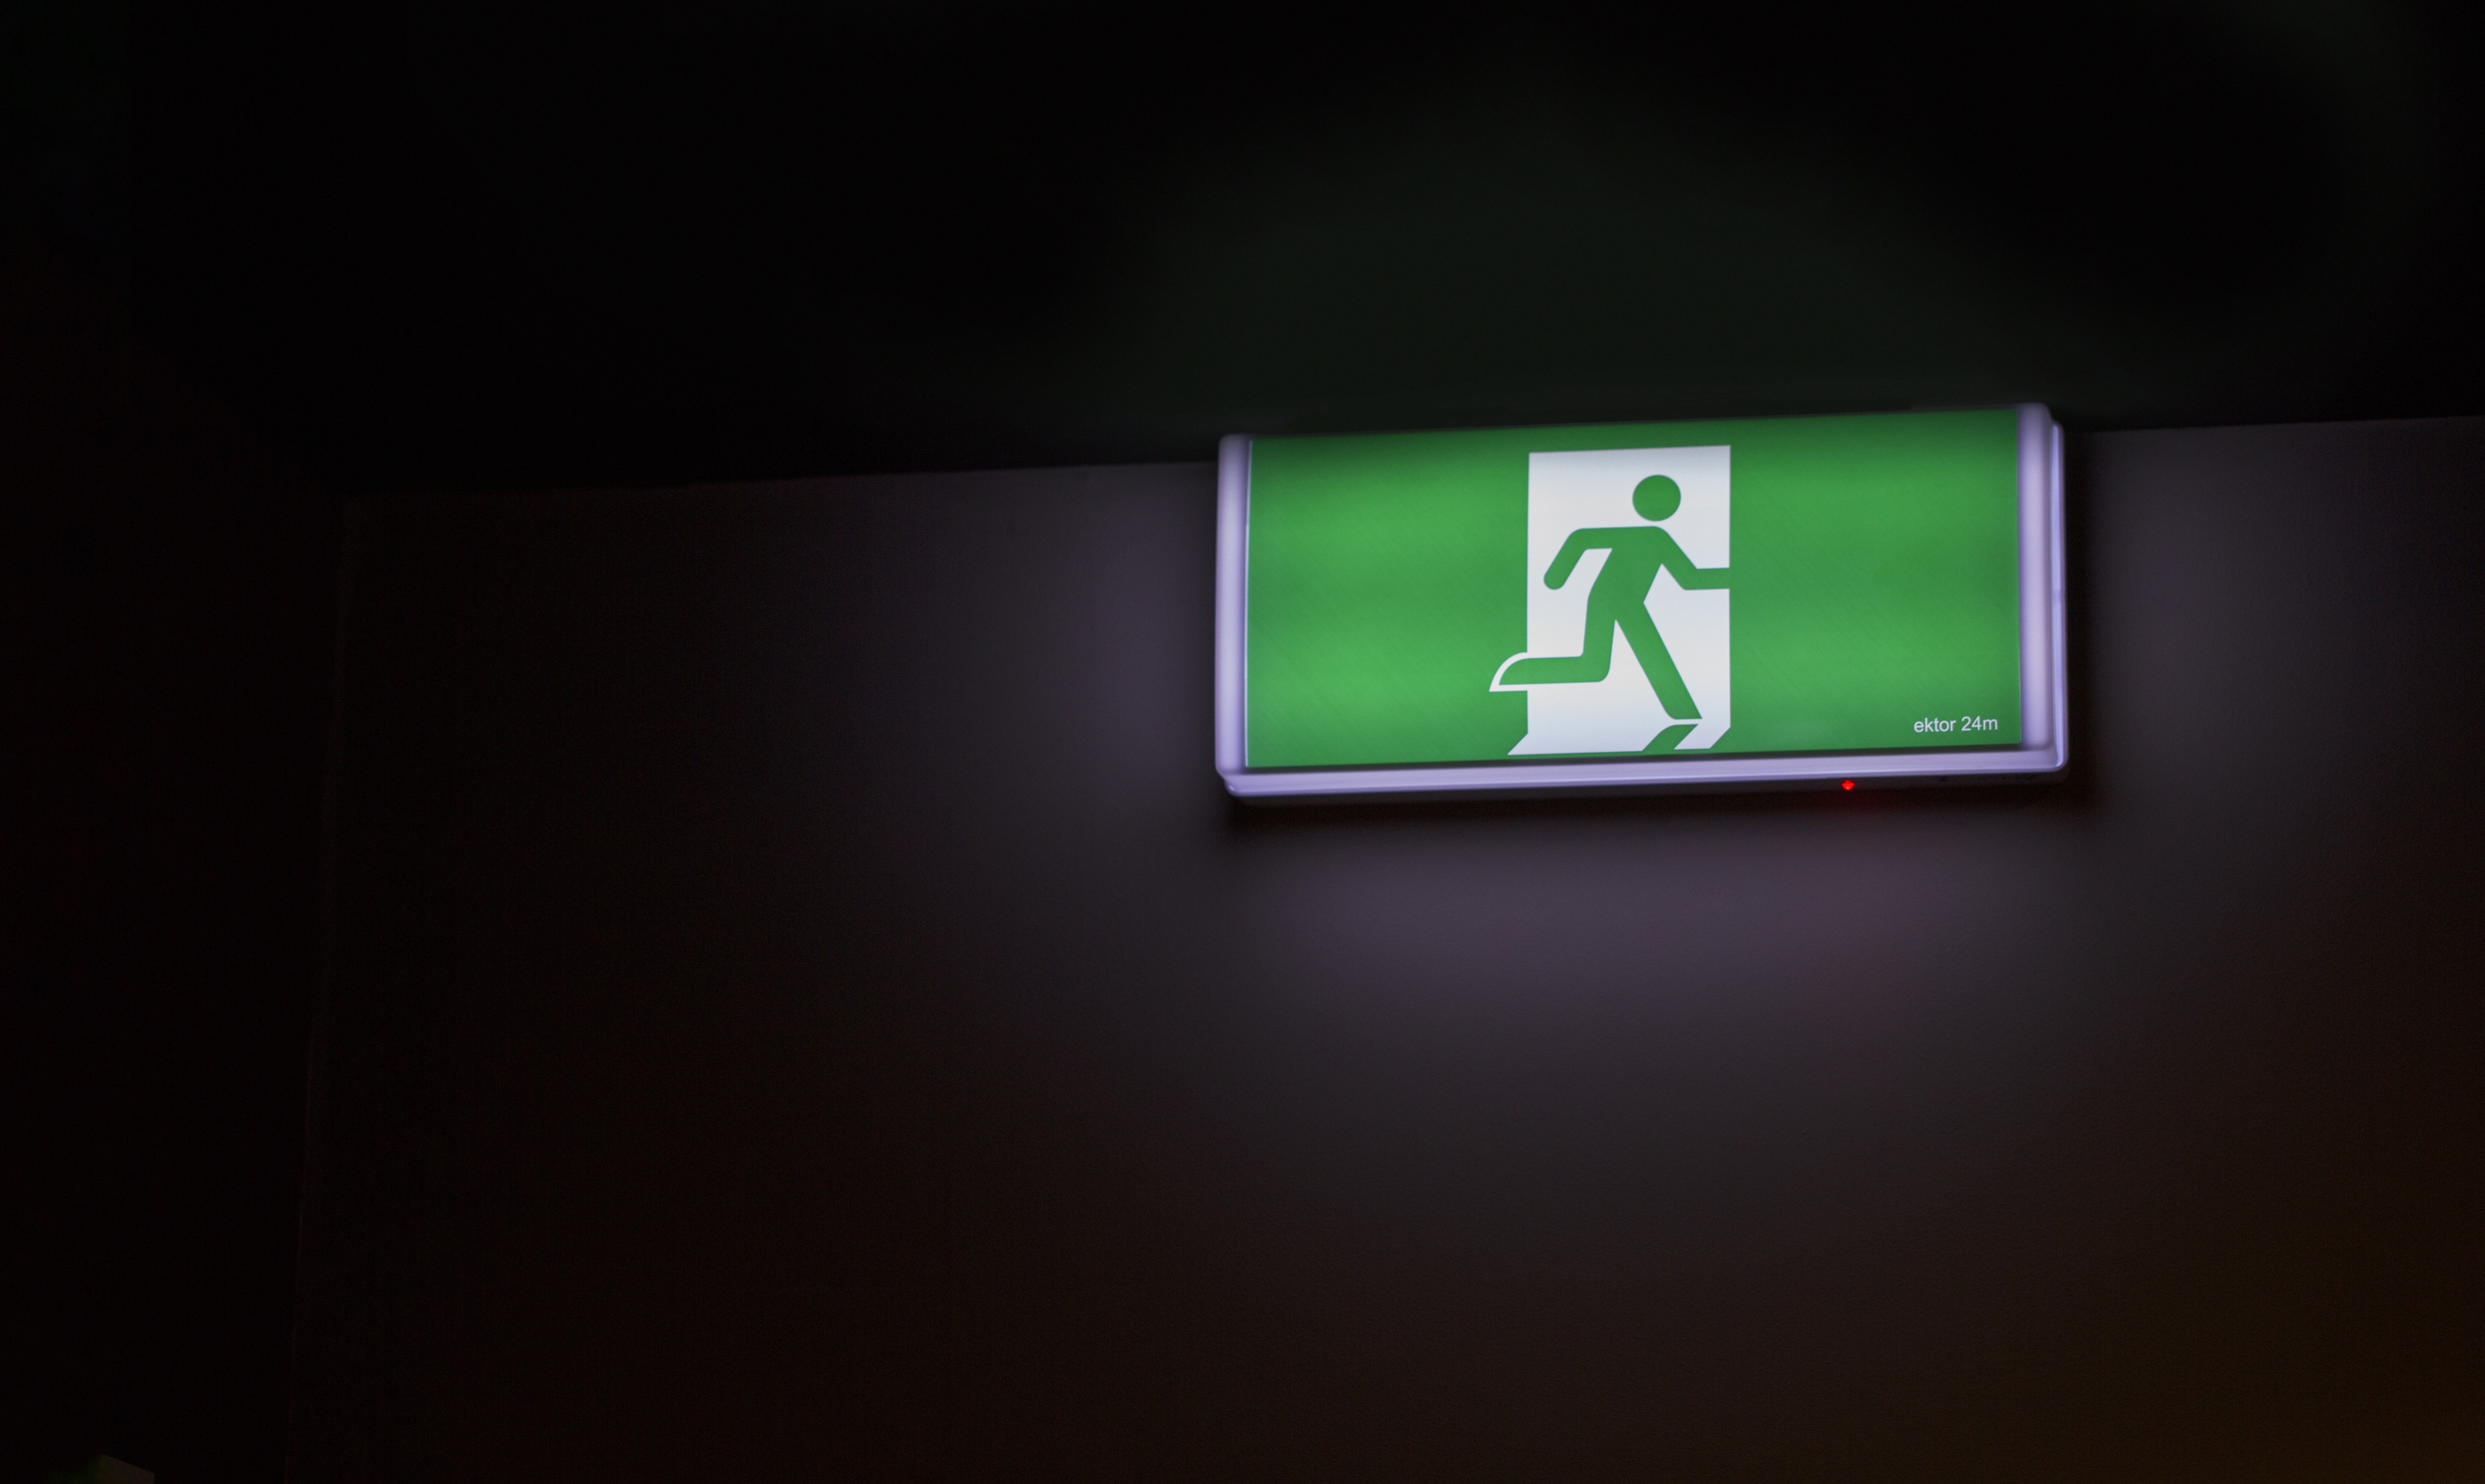 Fire Exit signage